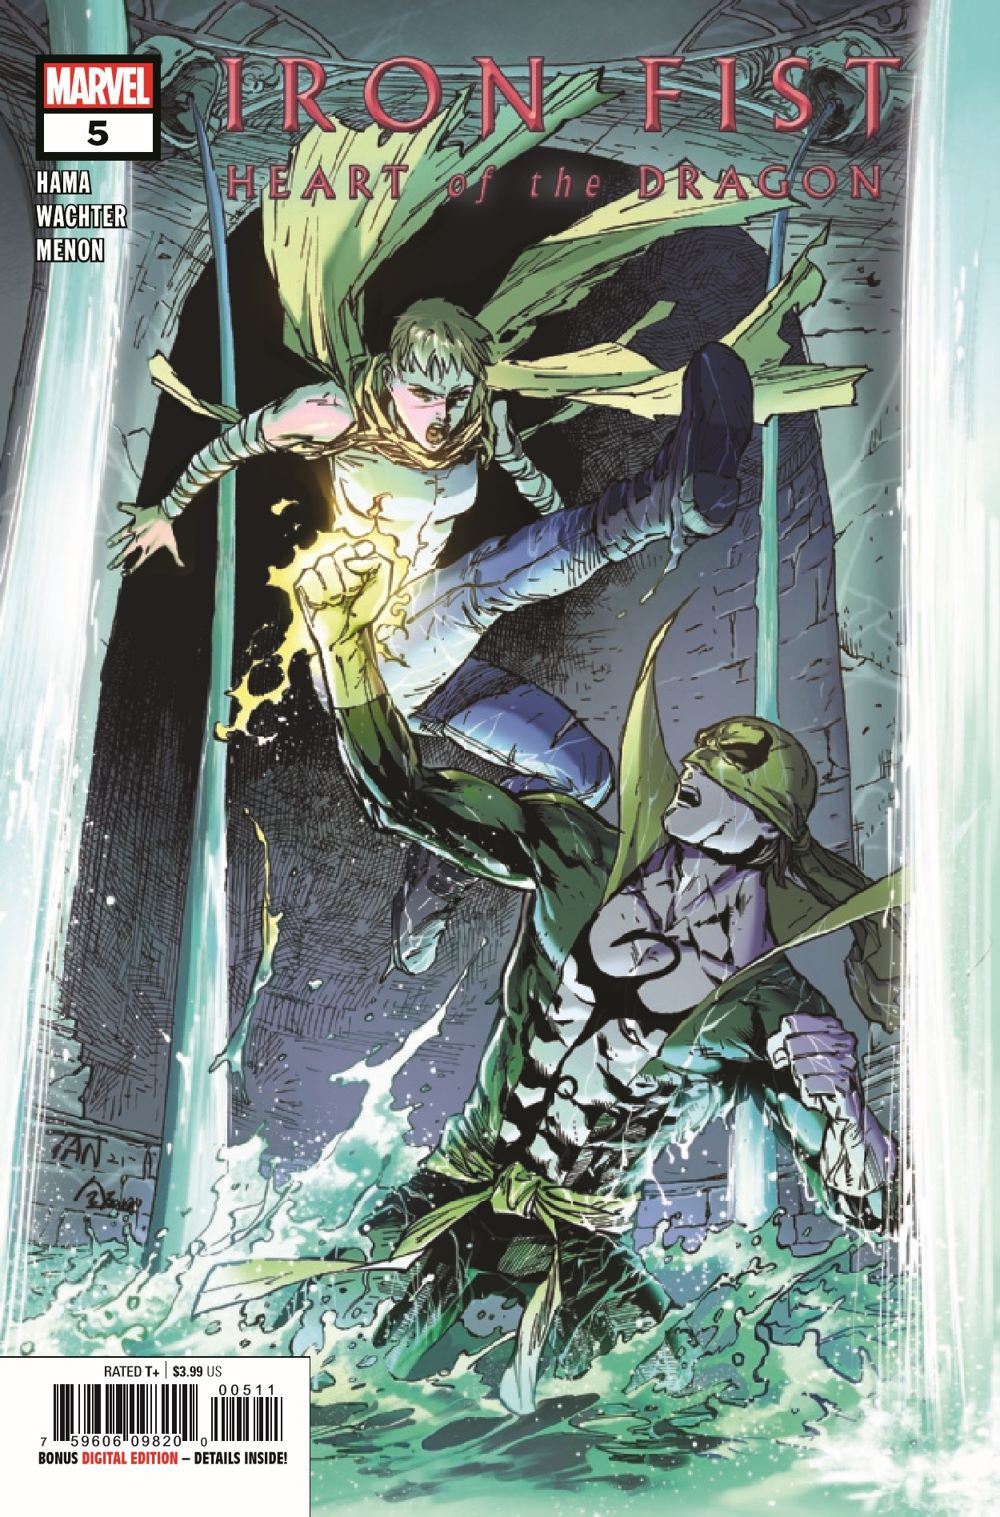 IRONFISTHOD2021005_Preview-1 ComicList Previews: IRON FIST HEART OF THE DRAGON #5 (OF 6)